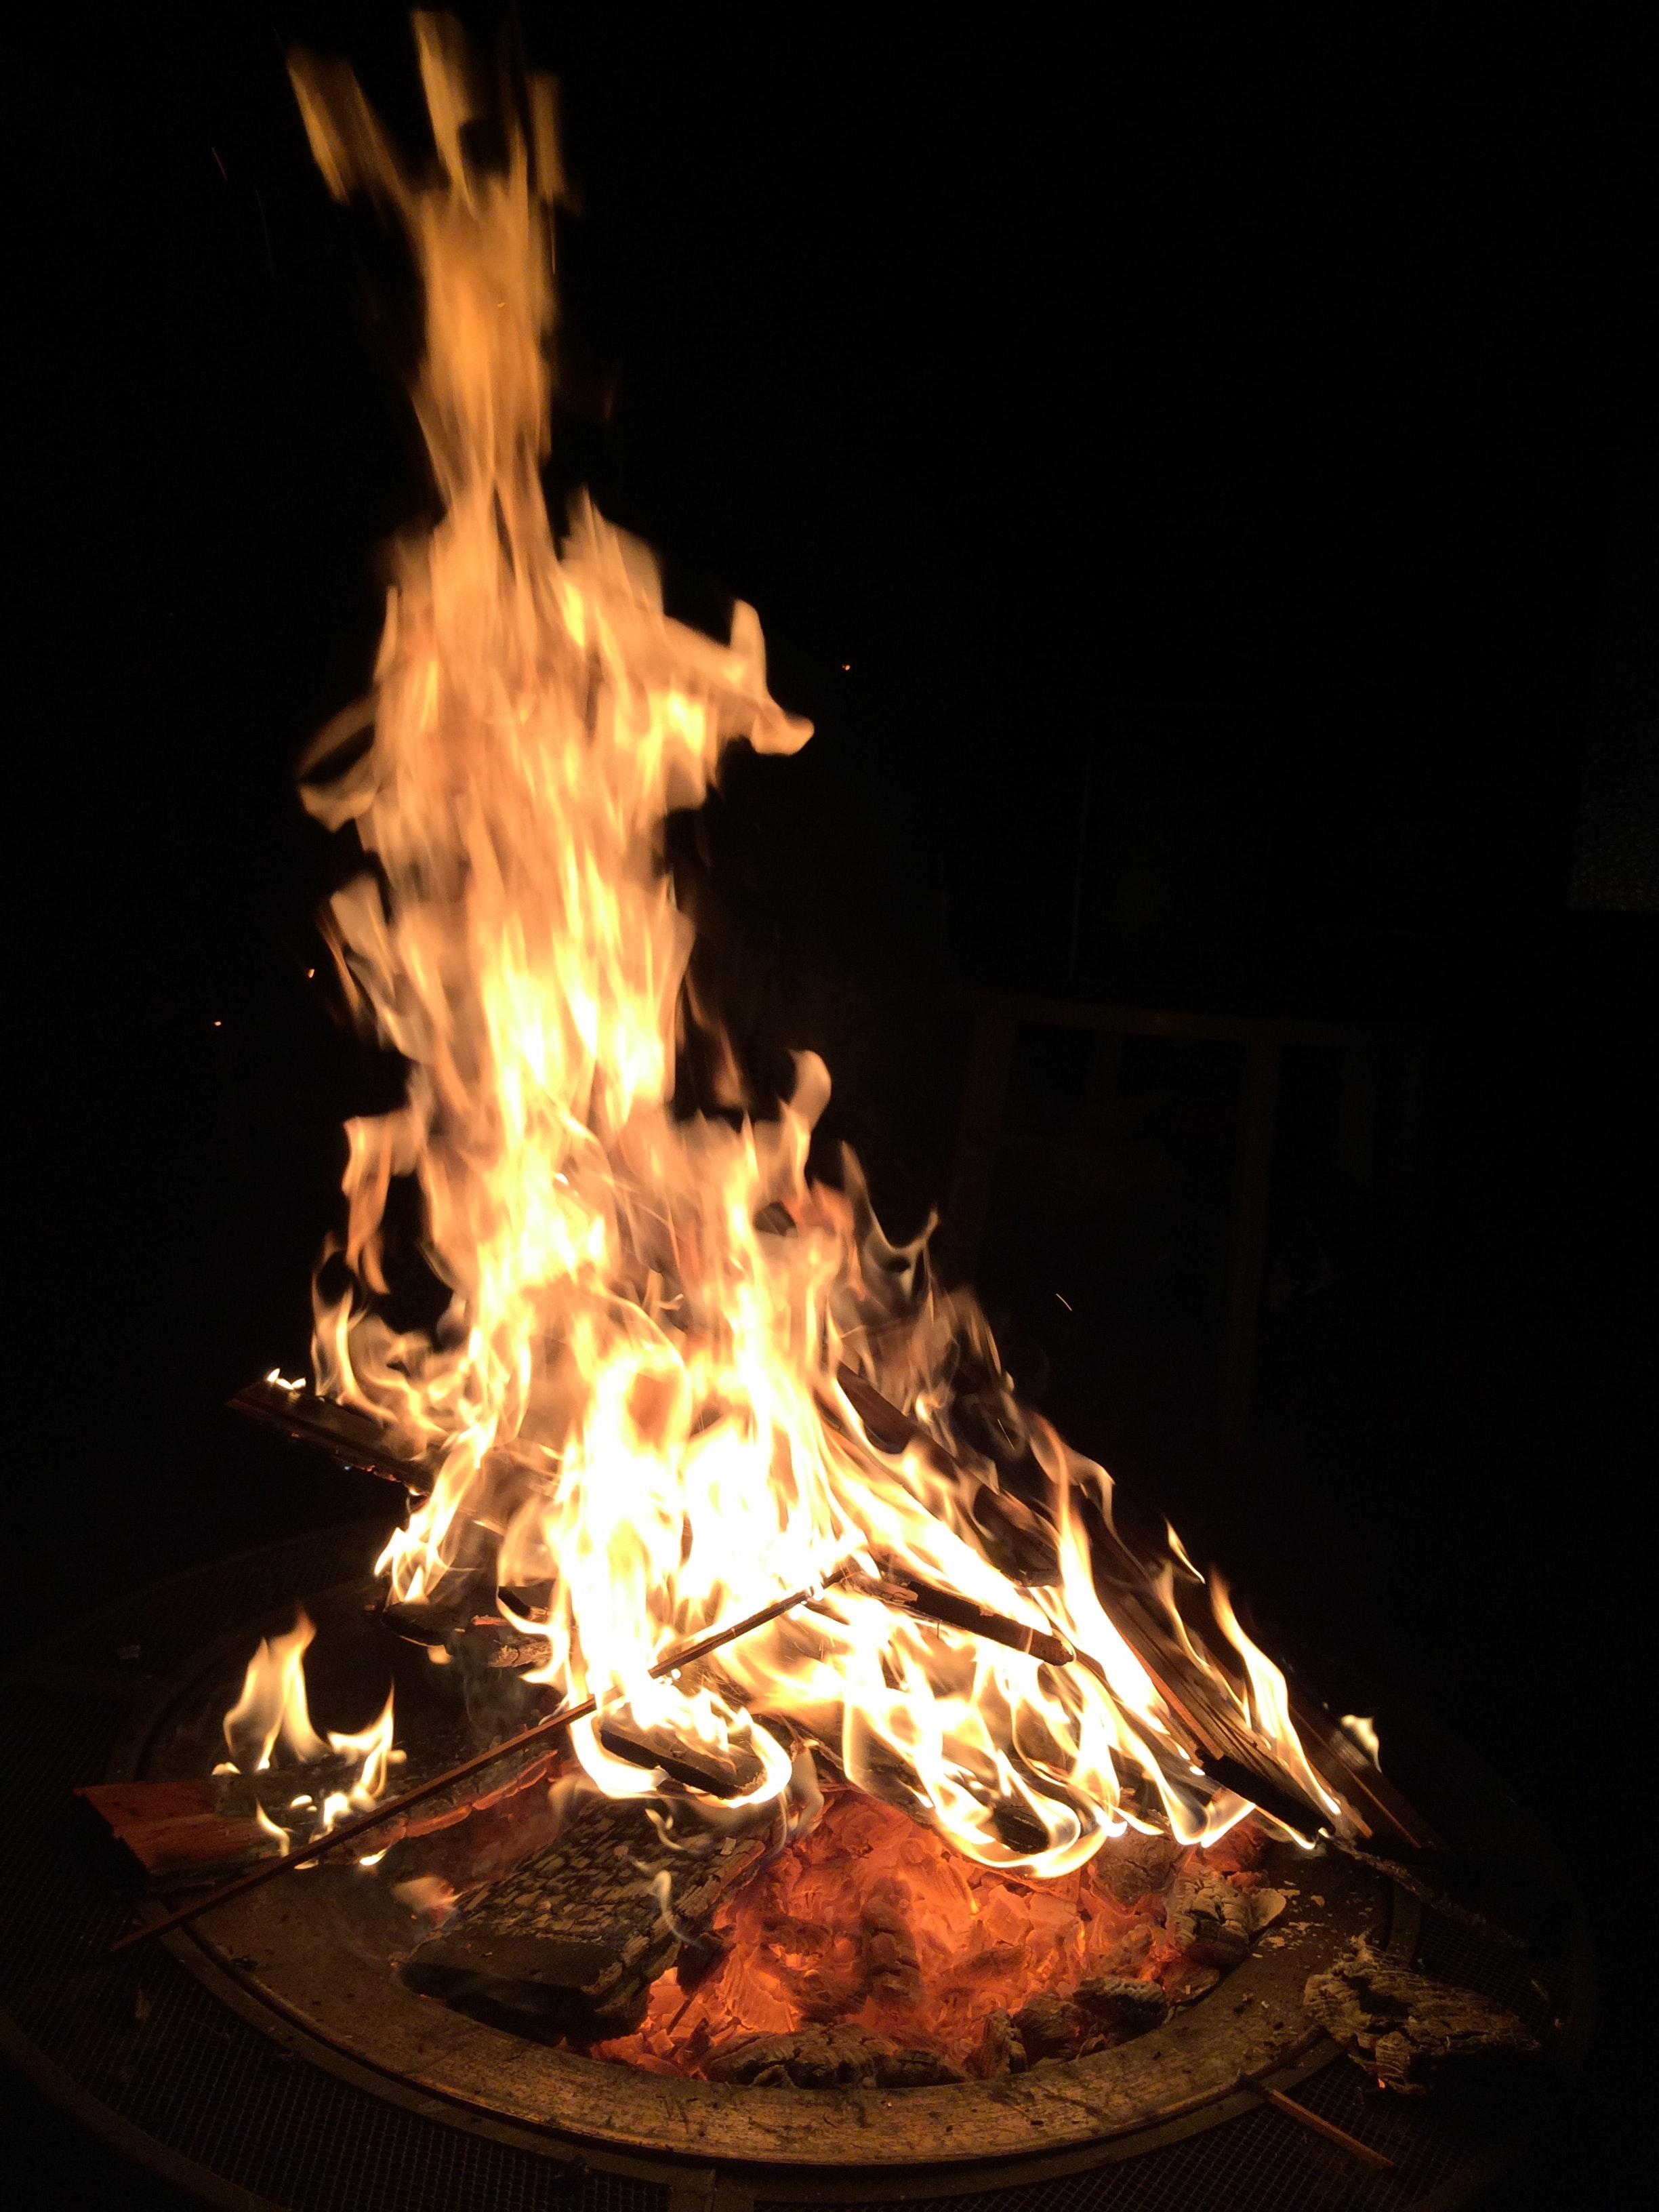 Free stock photo of campfire, fire, flames